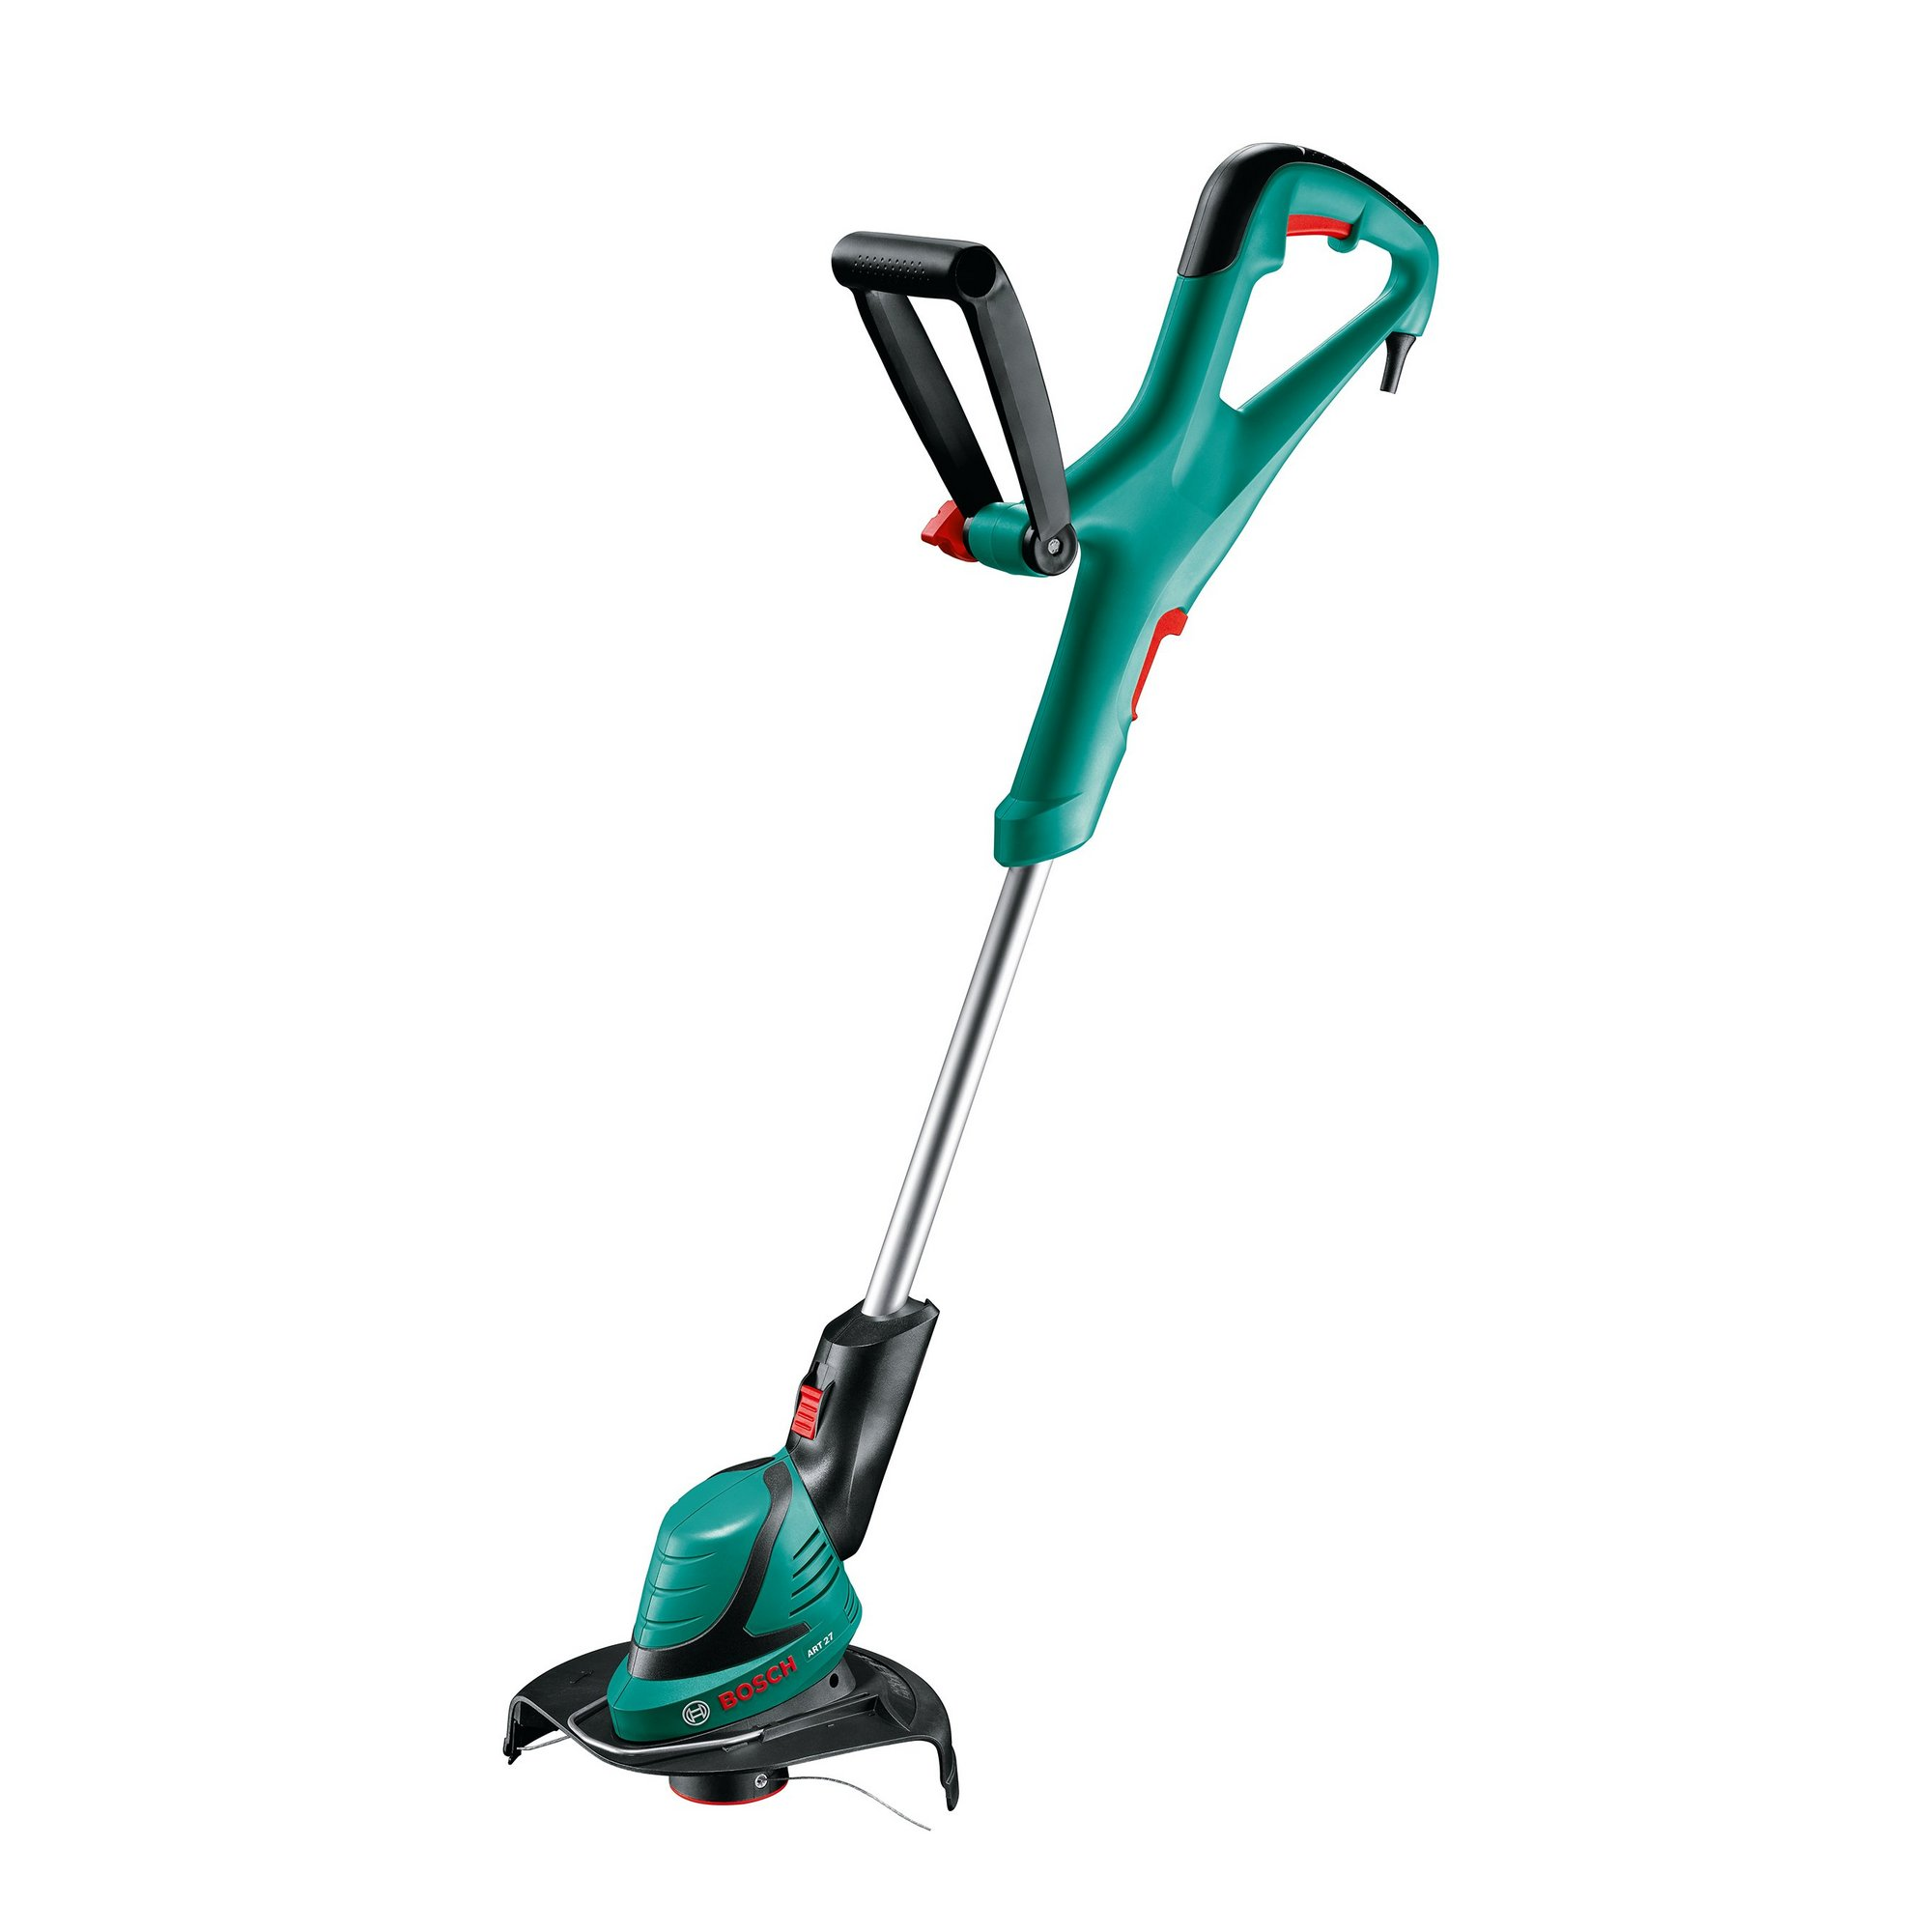 Image of Bosch ART 27 Electric Line Trimmer